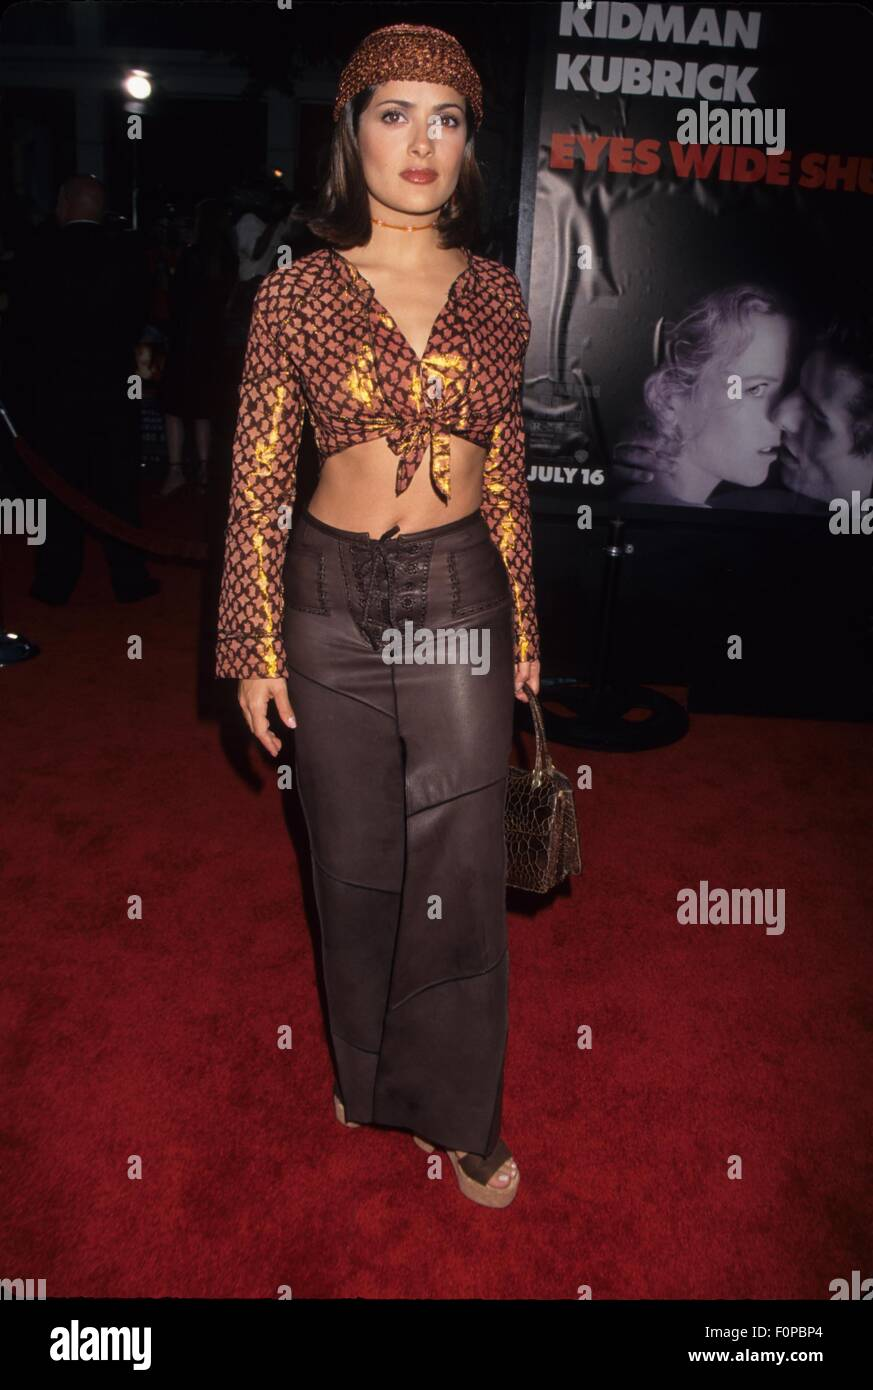 SALMA HAYEK at Eyes Wide Shut Westwood Ca. 1999.k16079lr. © Lisa Rose/Globe Photos/ZUMA Wire/ZUMA Wire/Alamy - Stock Image